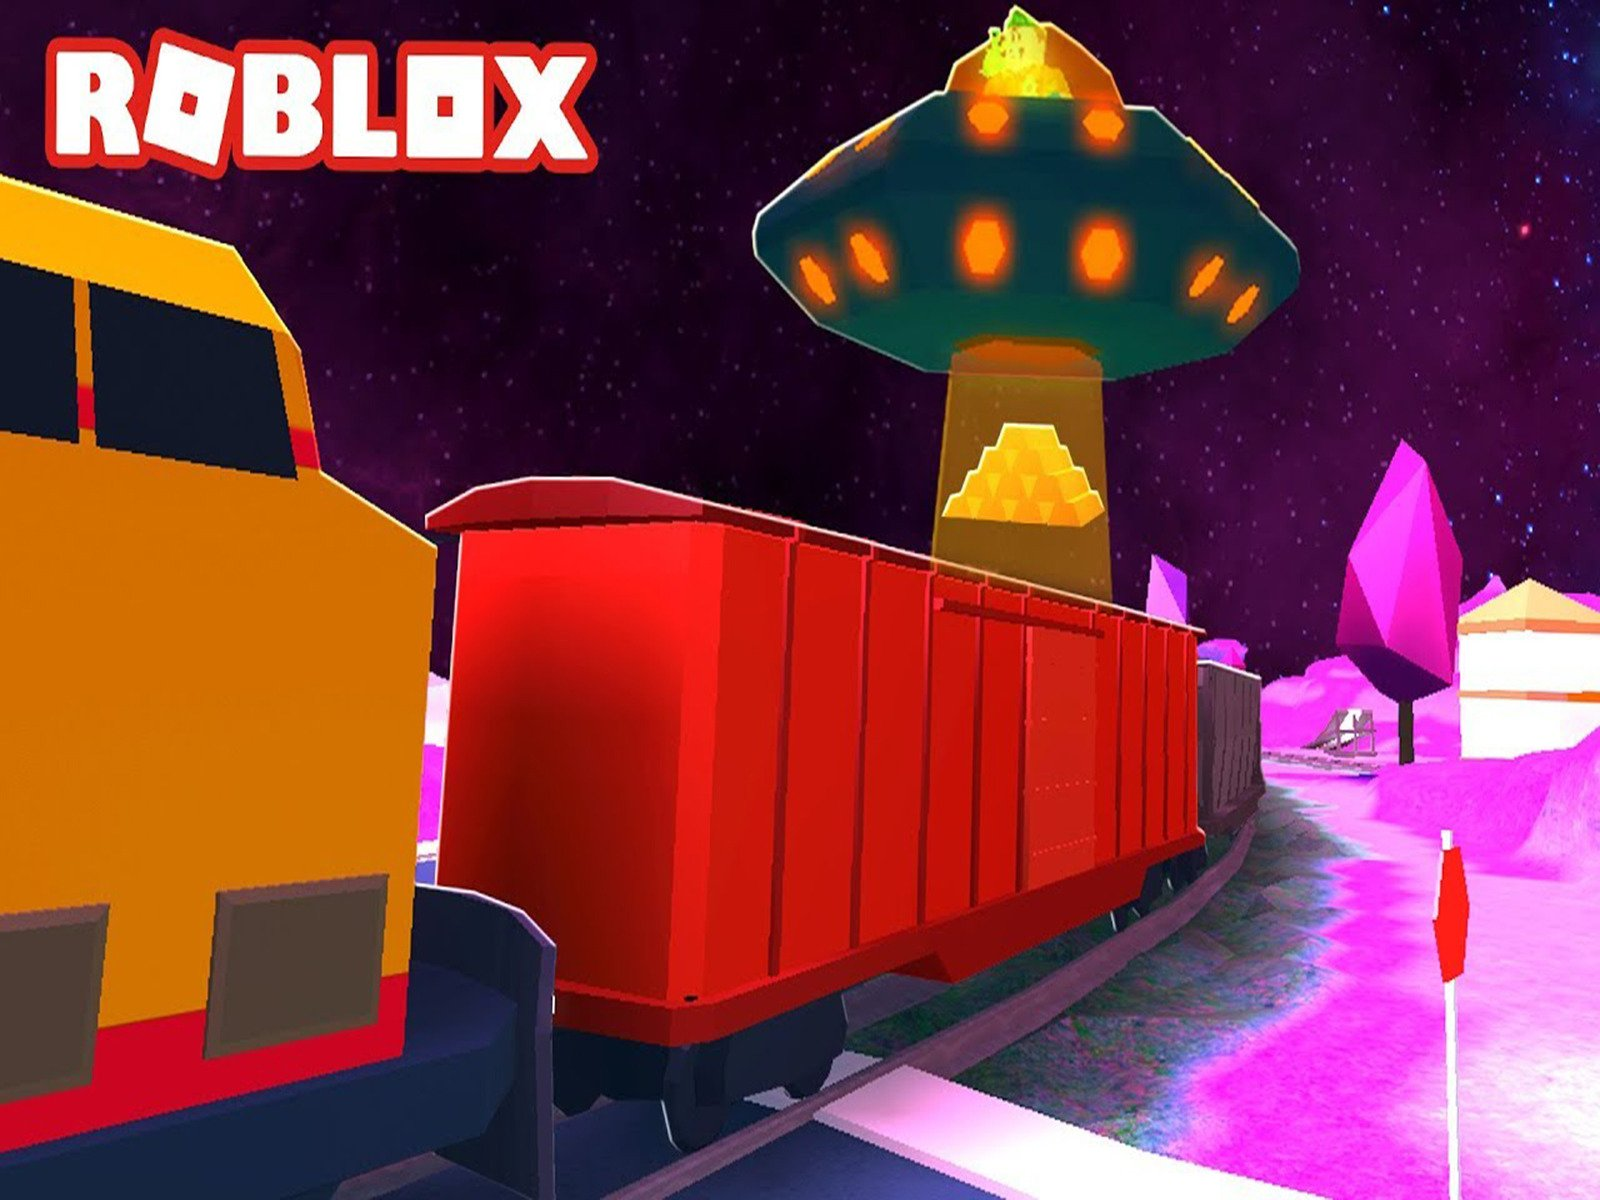 Hackers Try To Stop Our Uber Roblox Jailbreak - Watch Clip Sketch Prime Video